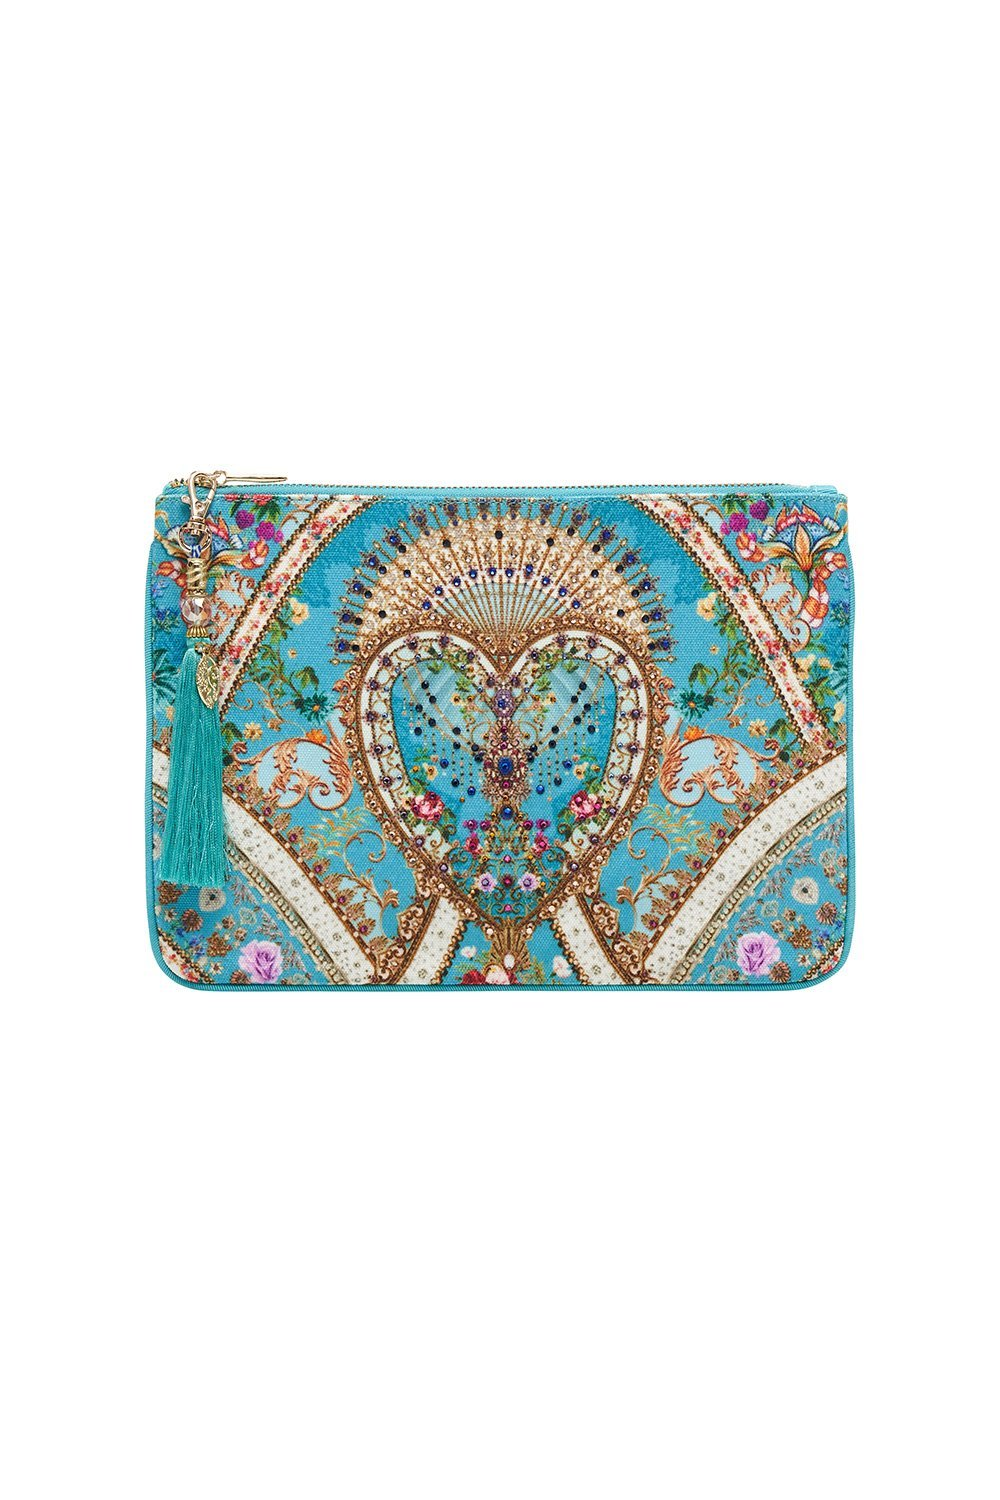 SMALL CANVAS CLUTCH A SONNET FOR SATINE